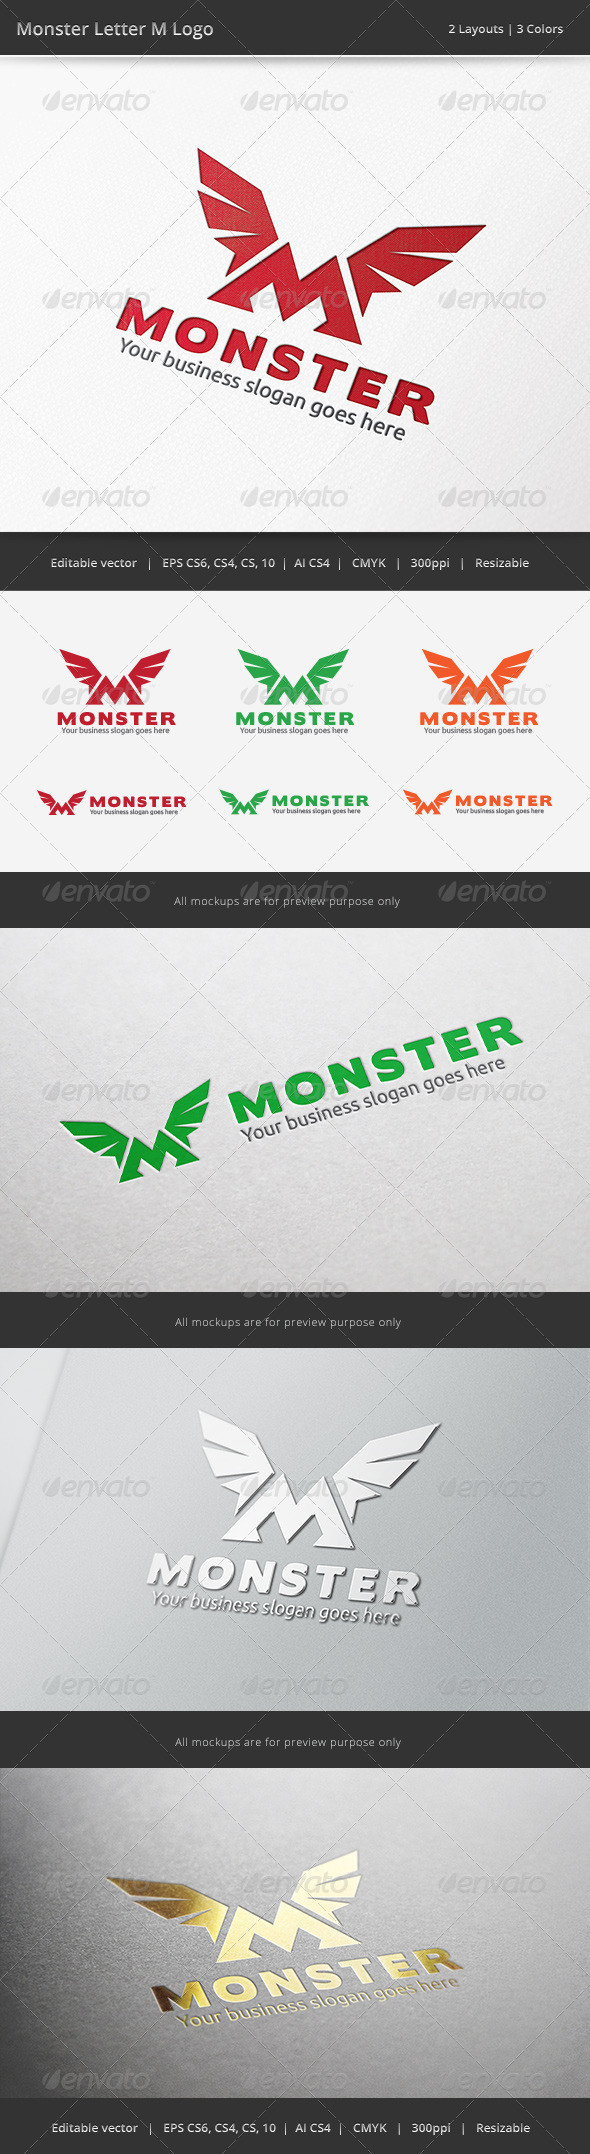 Monster M Letter Logo - Vector Abstract